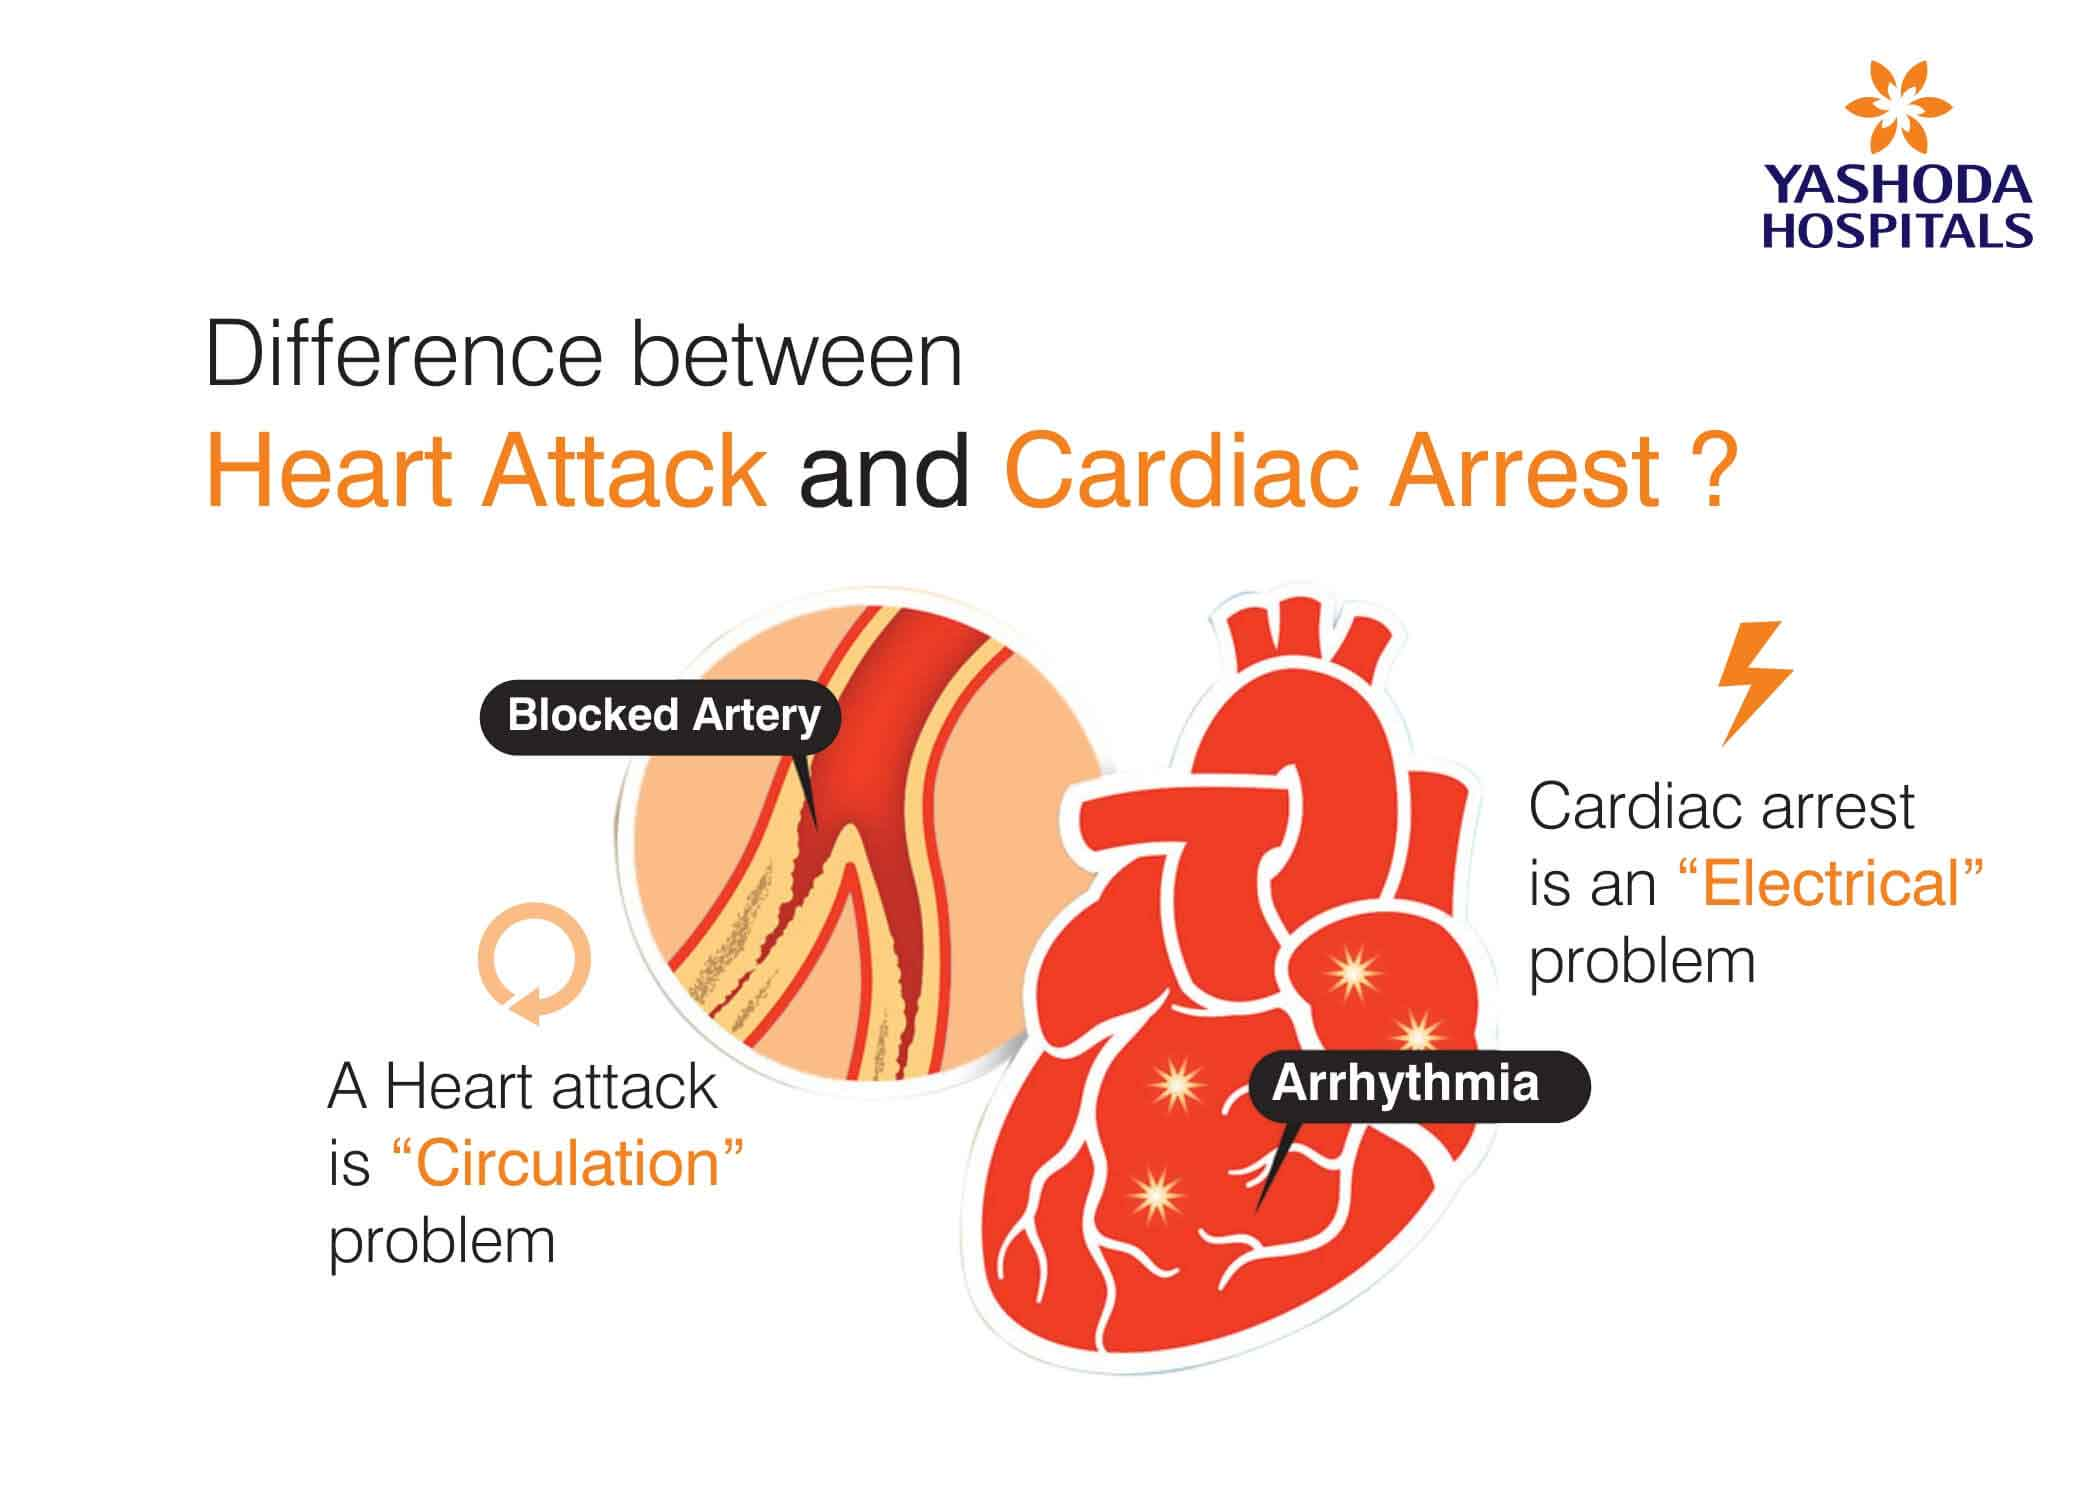 Heart attack and Cardiac arrest